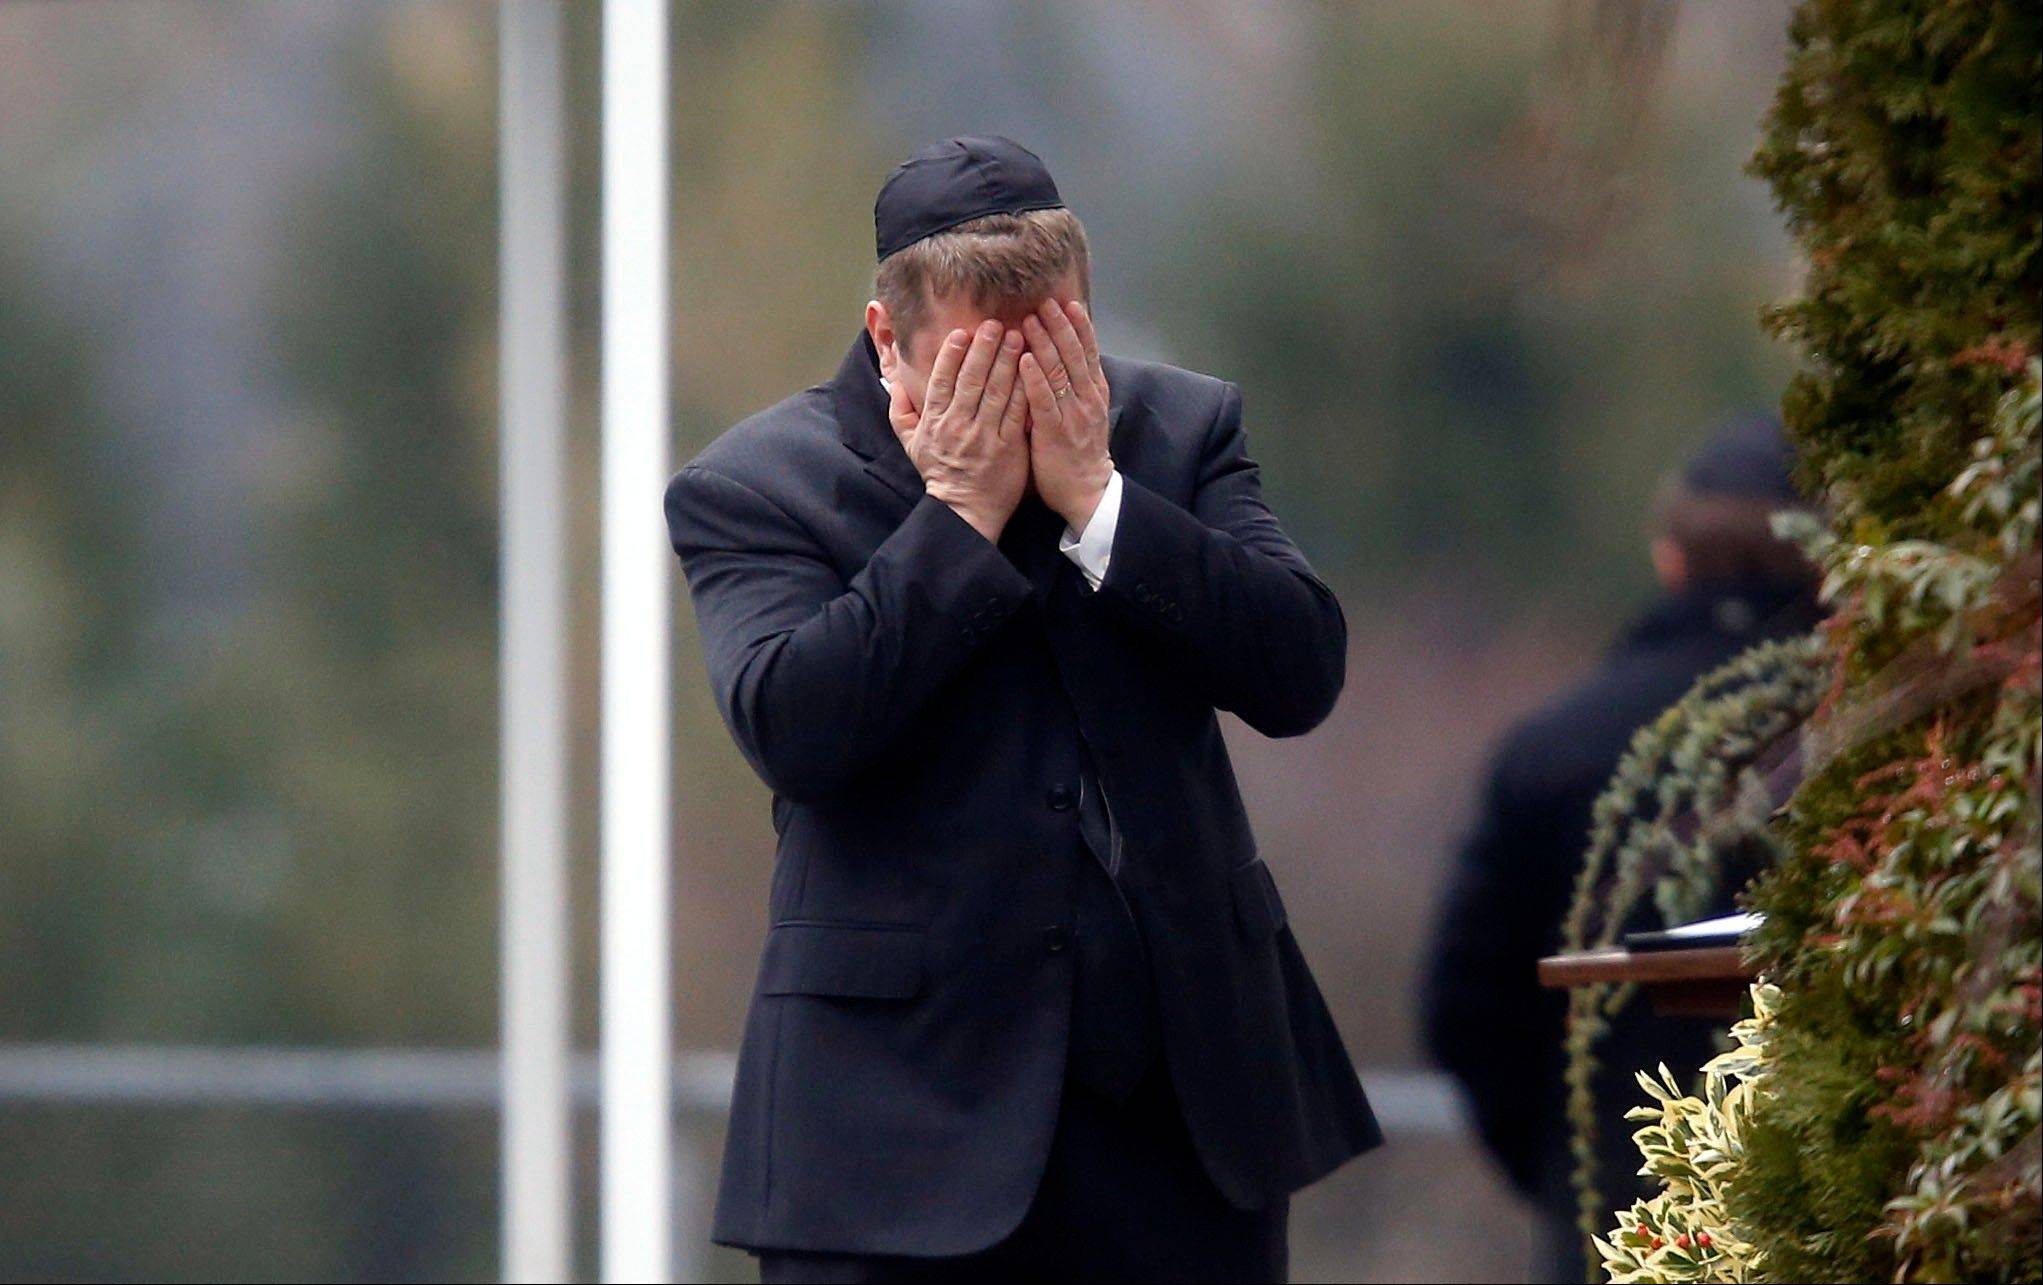 A mourner arrives at the funeral service for 6-year-old Noah Pozner, Monday, Dec. 17, 2012, in Fairfield, Conn. Pozner was killed when a gunman walked into Sandy Hook Elementary School in Newtown Friday and opened fire, killing 26 people, including 20 children.